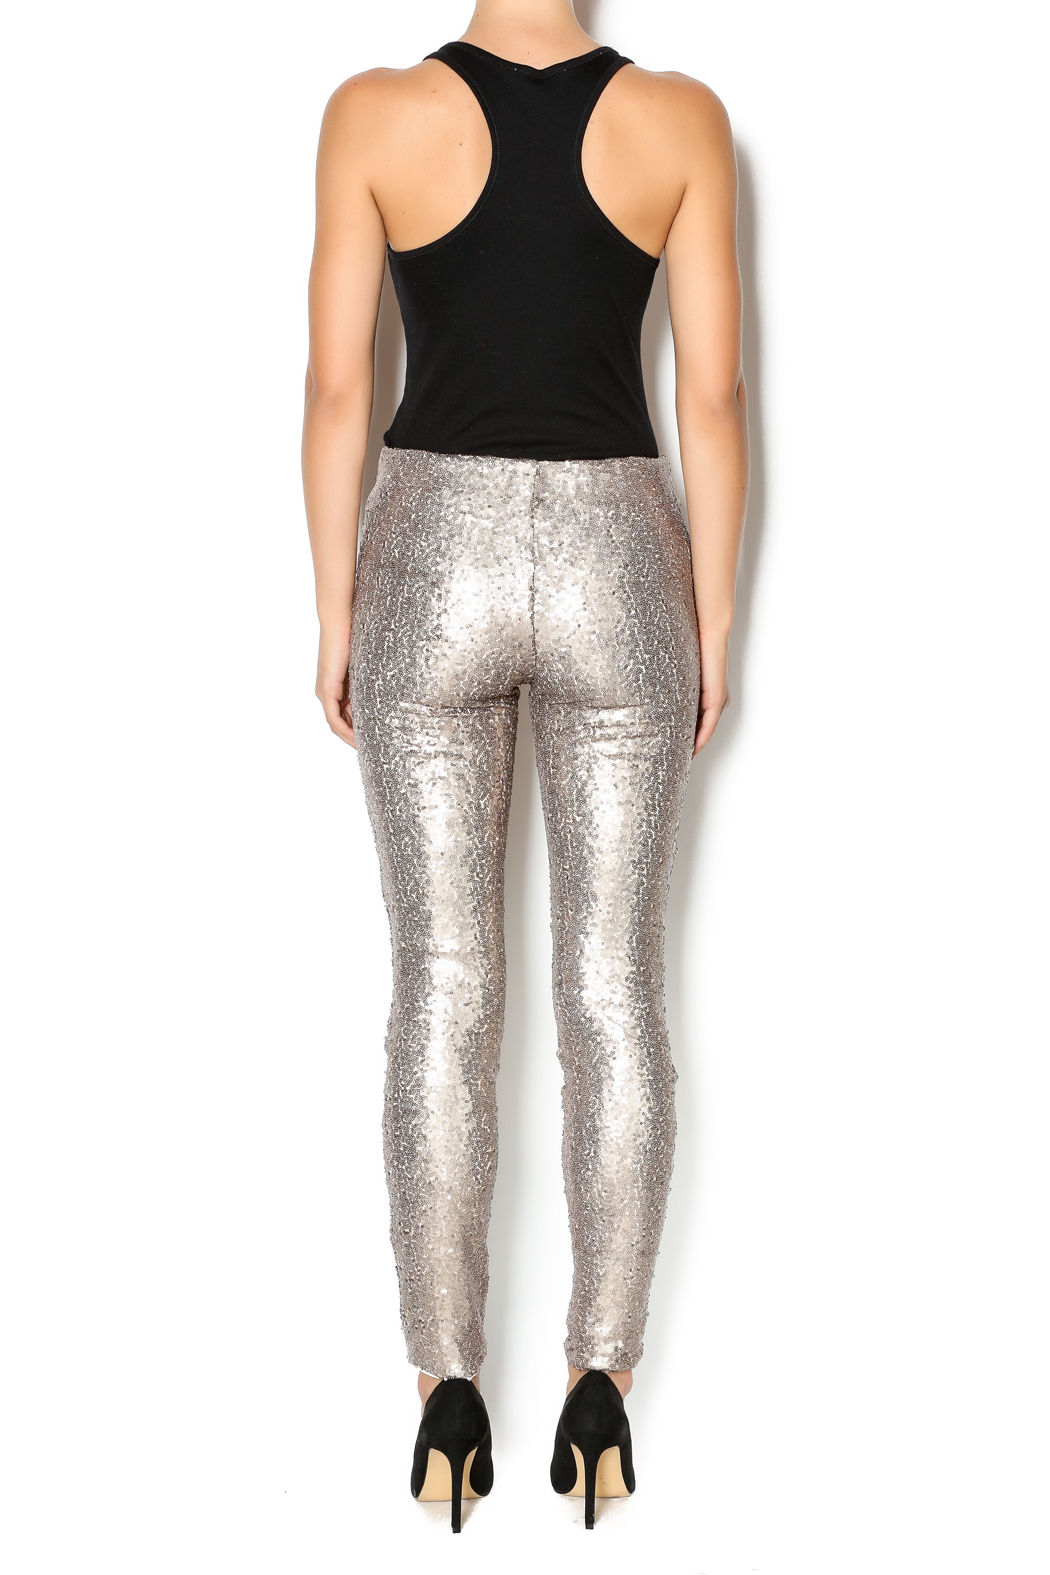 may and july inc Sequin Legging - Side Cropped Image